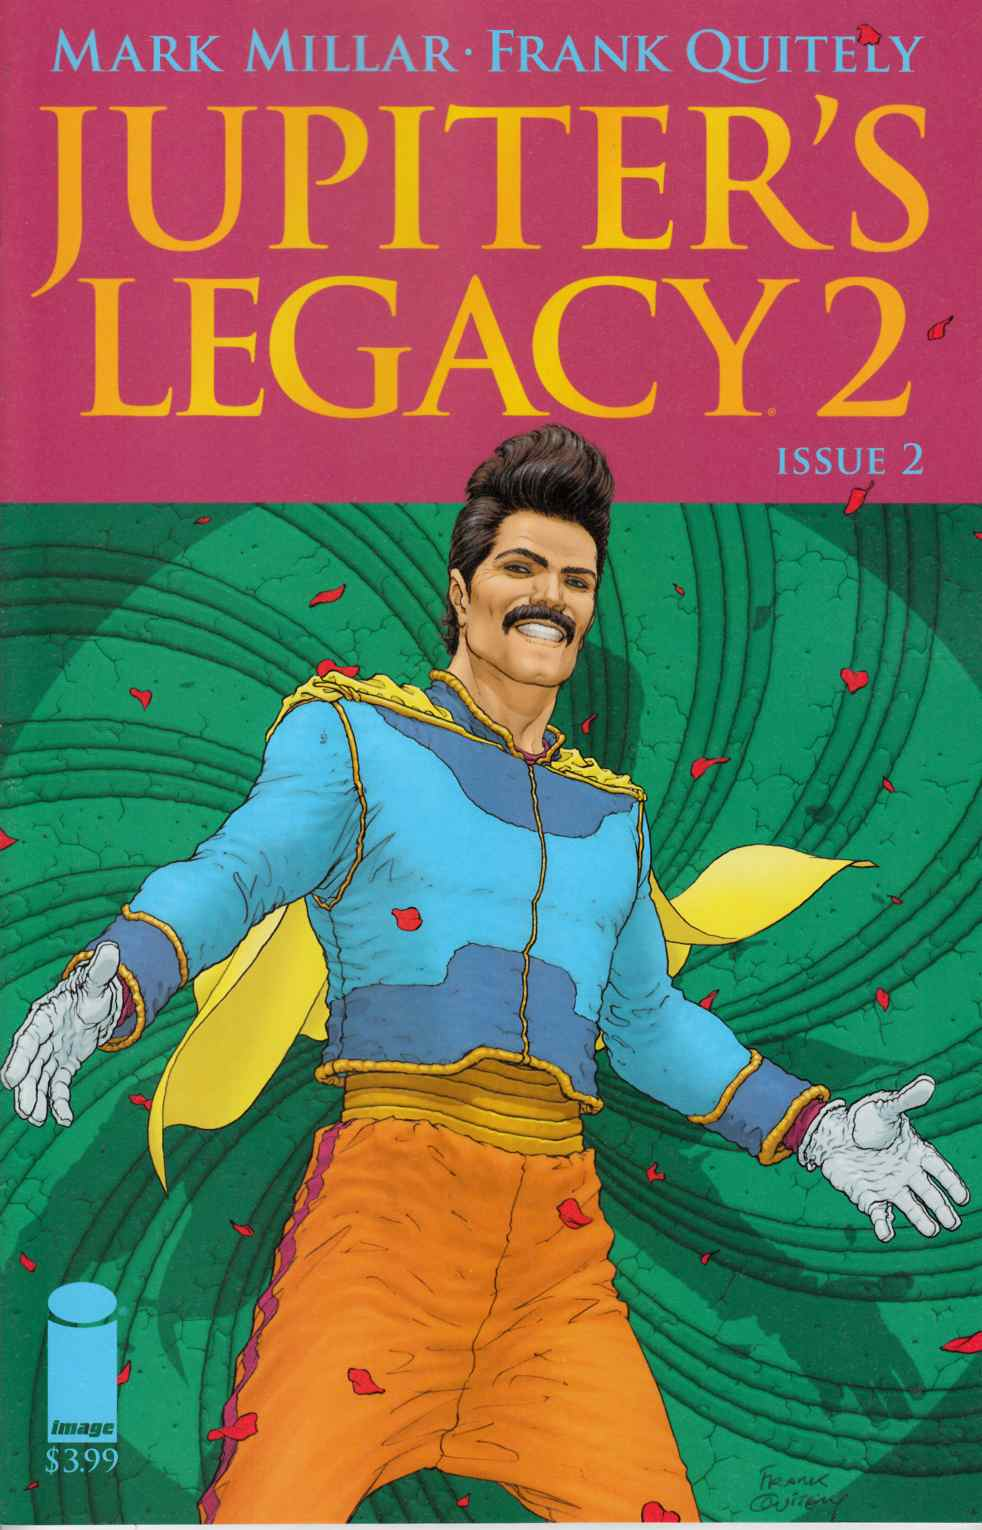 Jupiters Legacy Vol 2 #2 Cover A [Image Comic] THUMBNAIL